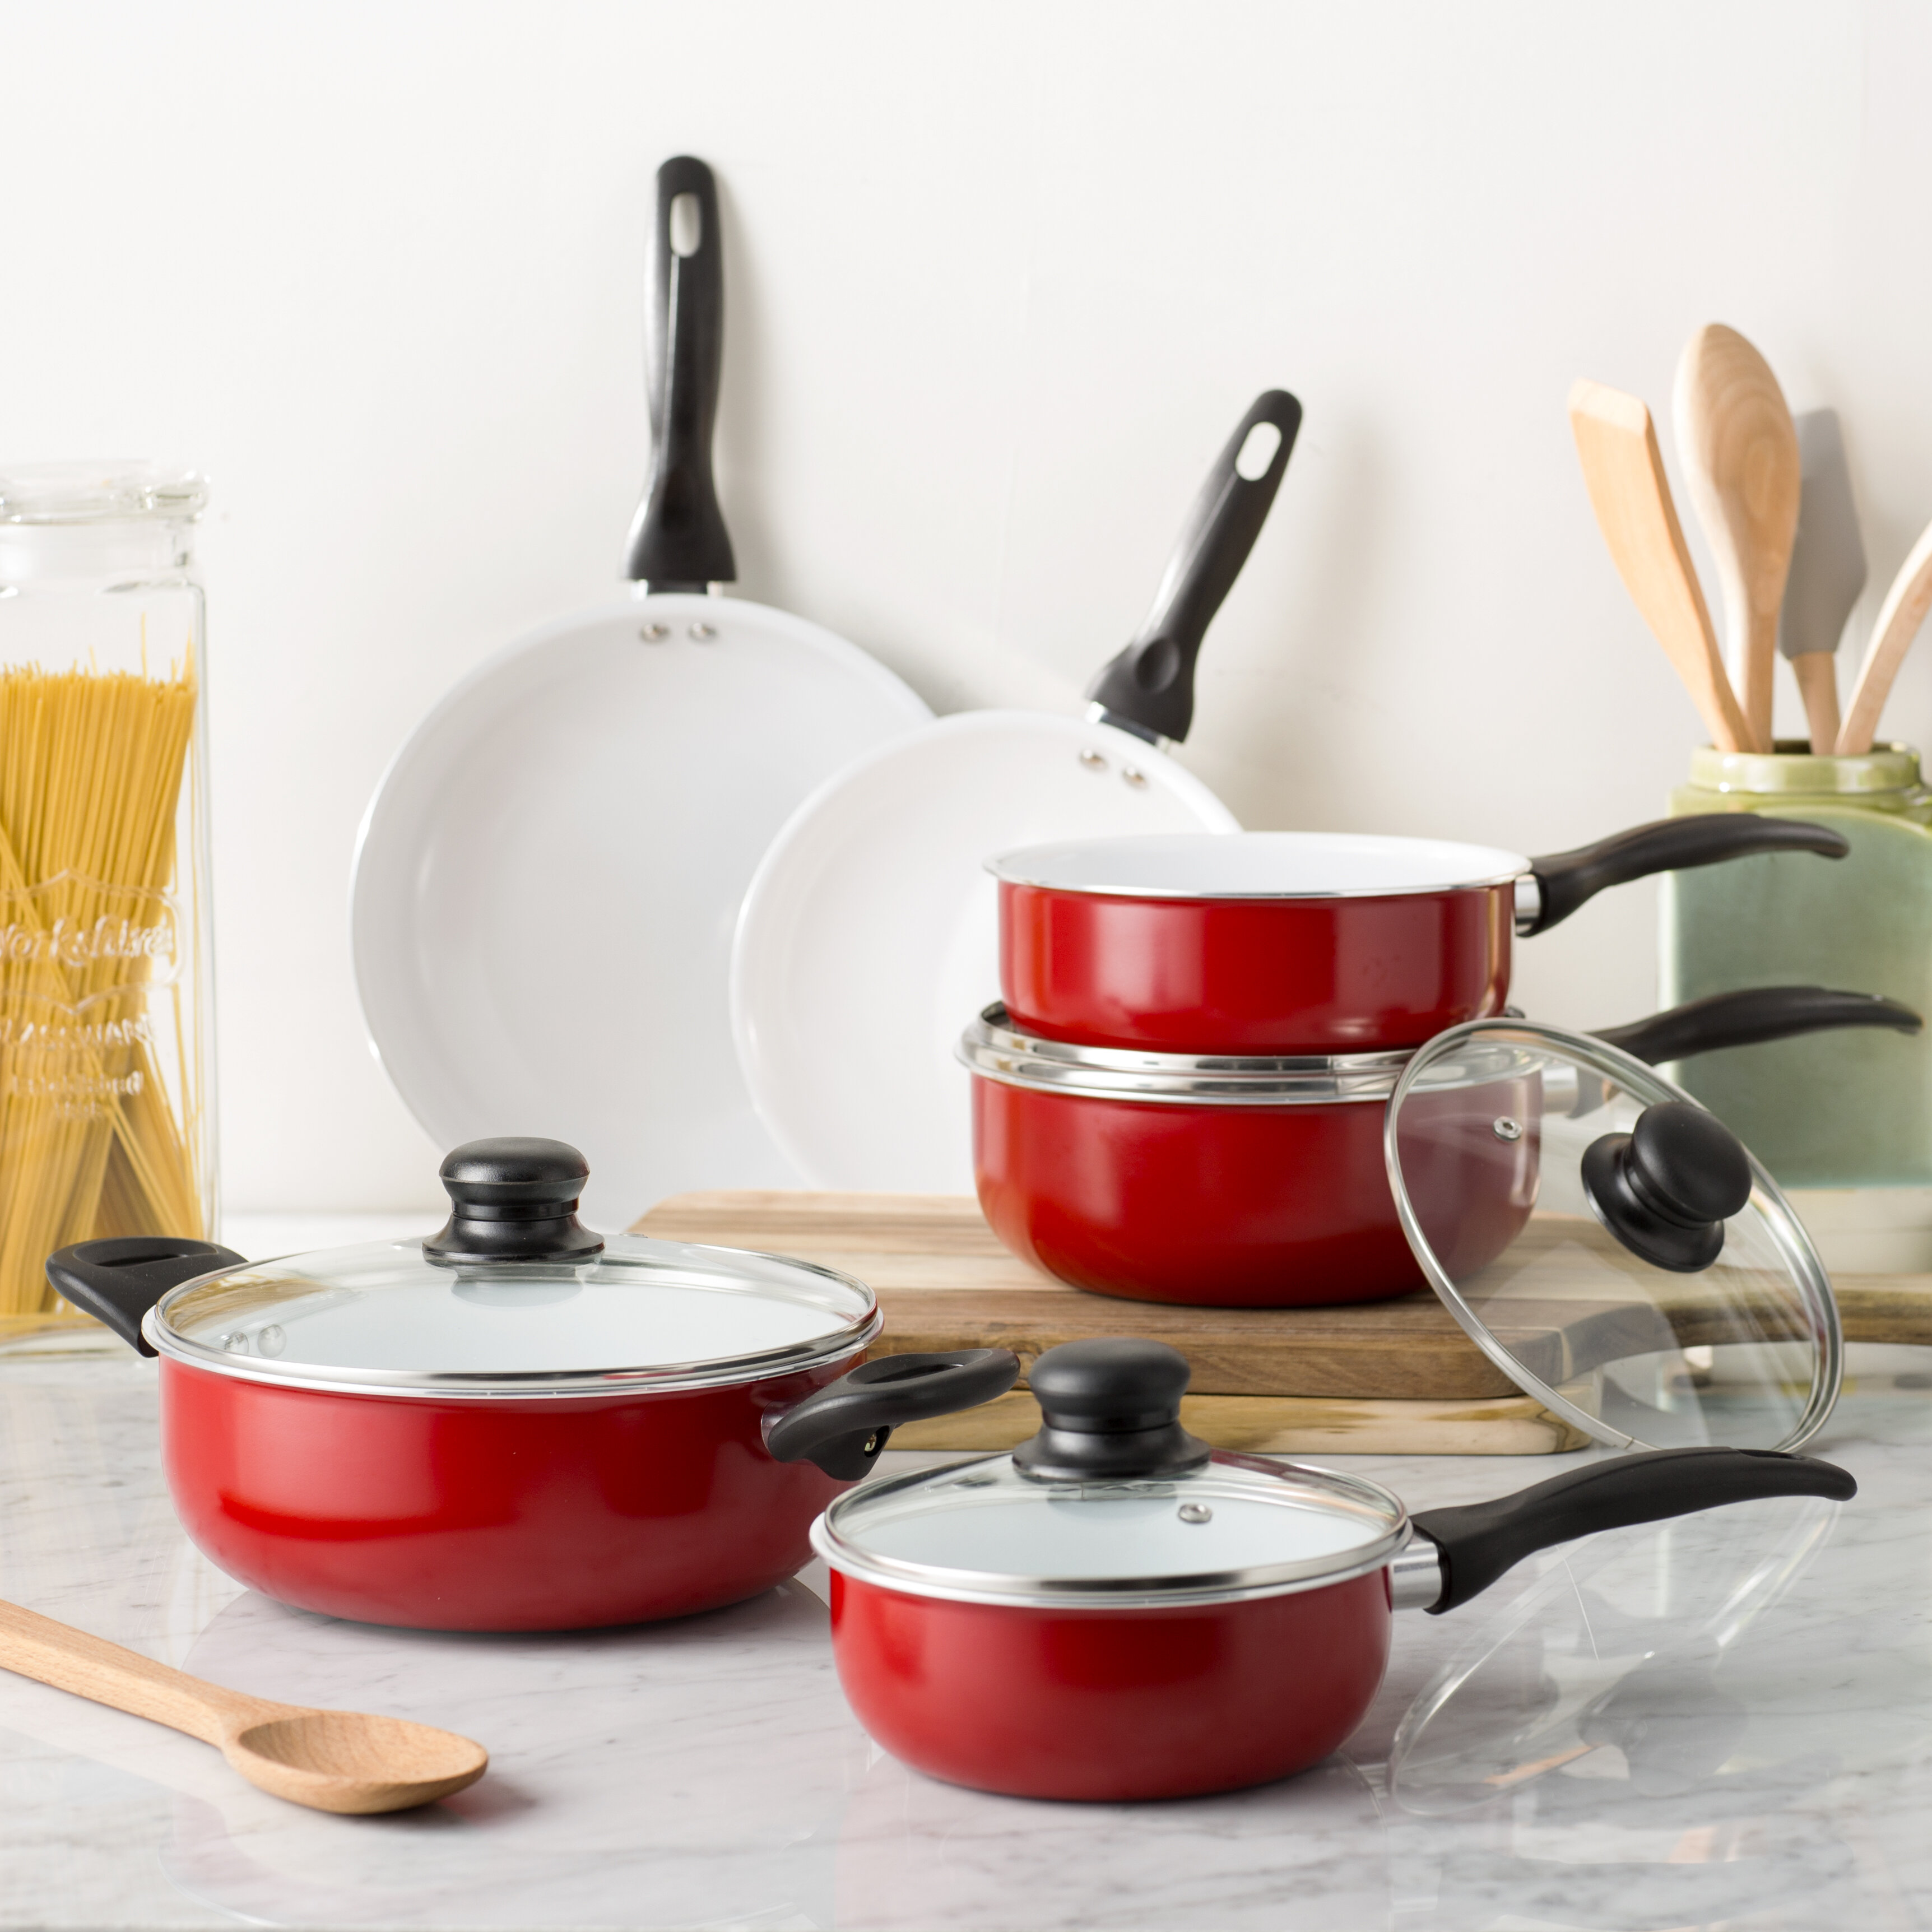 Image result for Advantages of Choosing Ceramic Cookware Sets